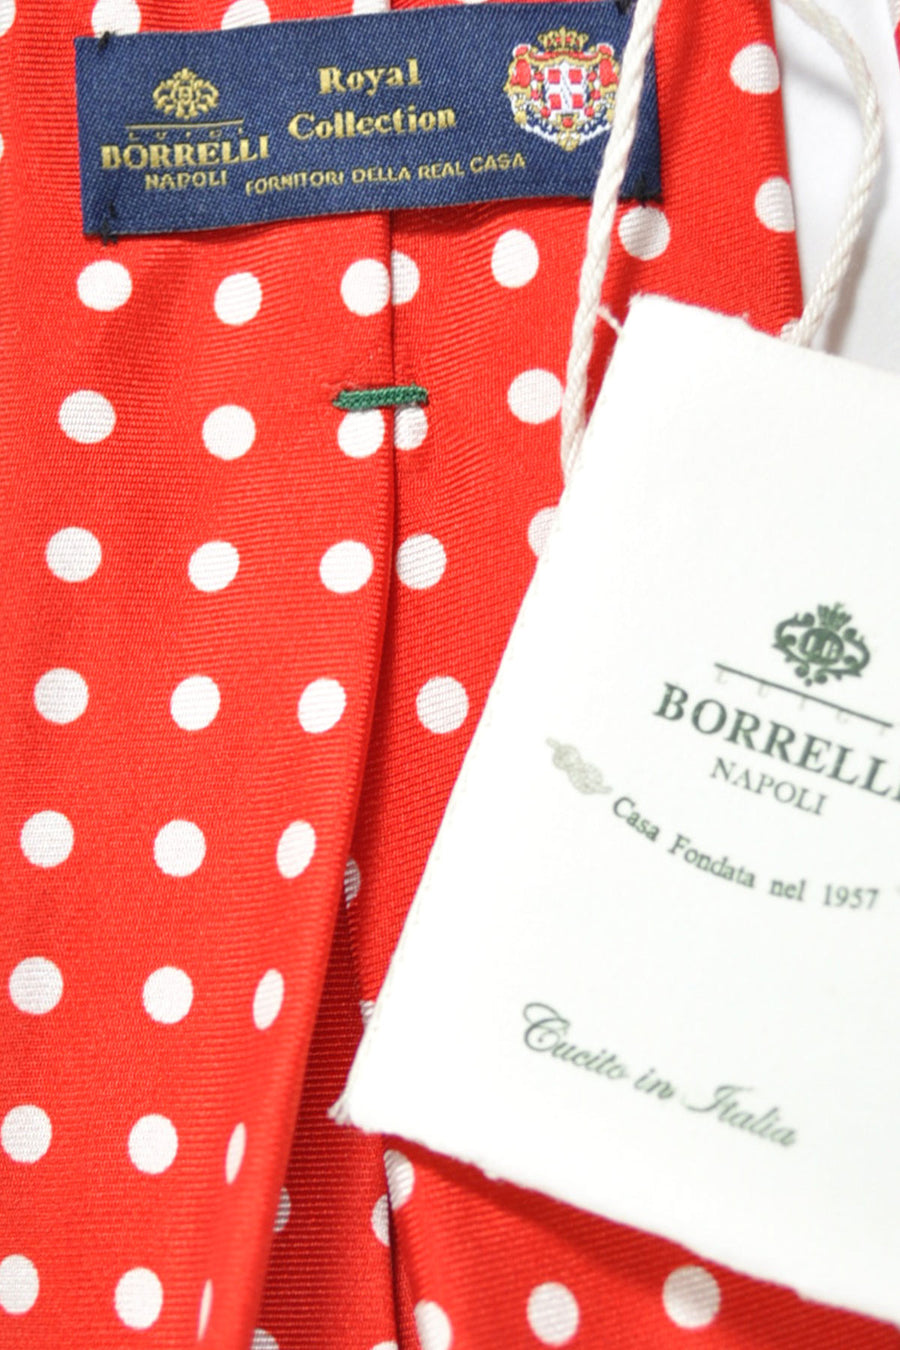 Sevenfold Tie ROYAL COLLECTION Red White Polka Dots